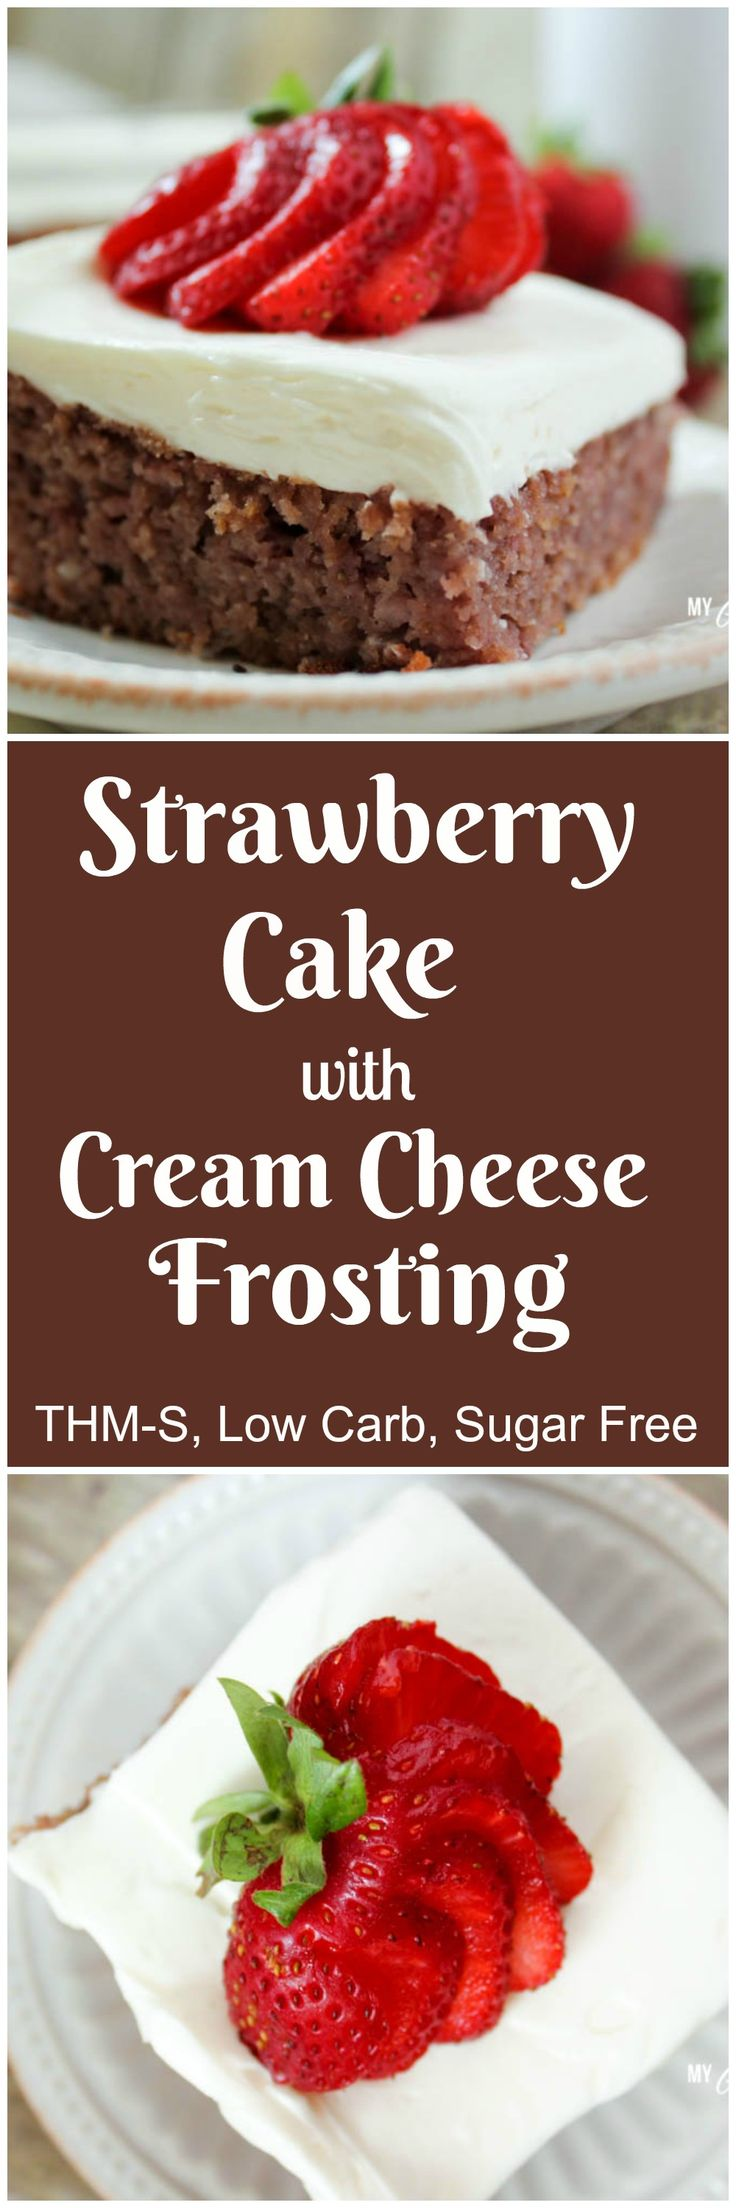 Low Carb Strawberry Cake with Cream Cheese Frosting (THM-S, Sugar Free, Gluten Free)